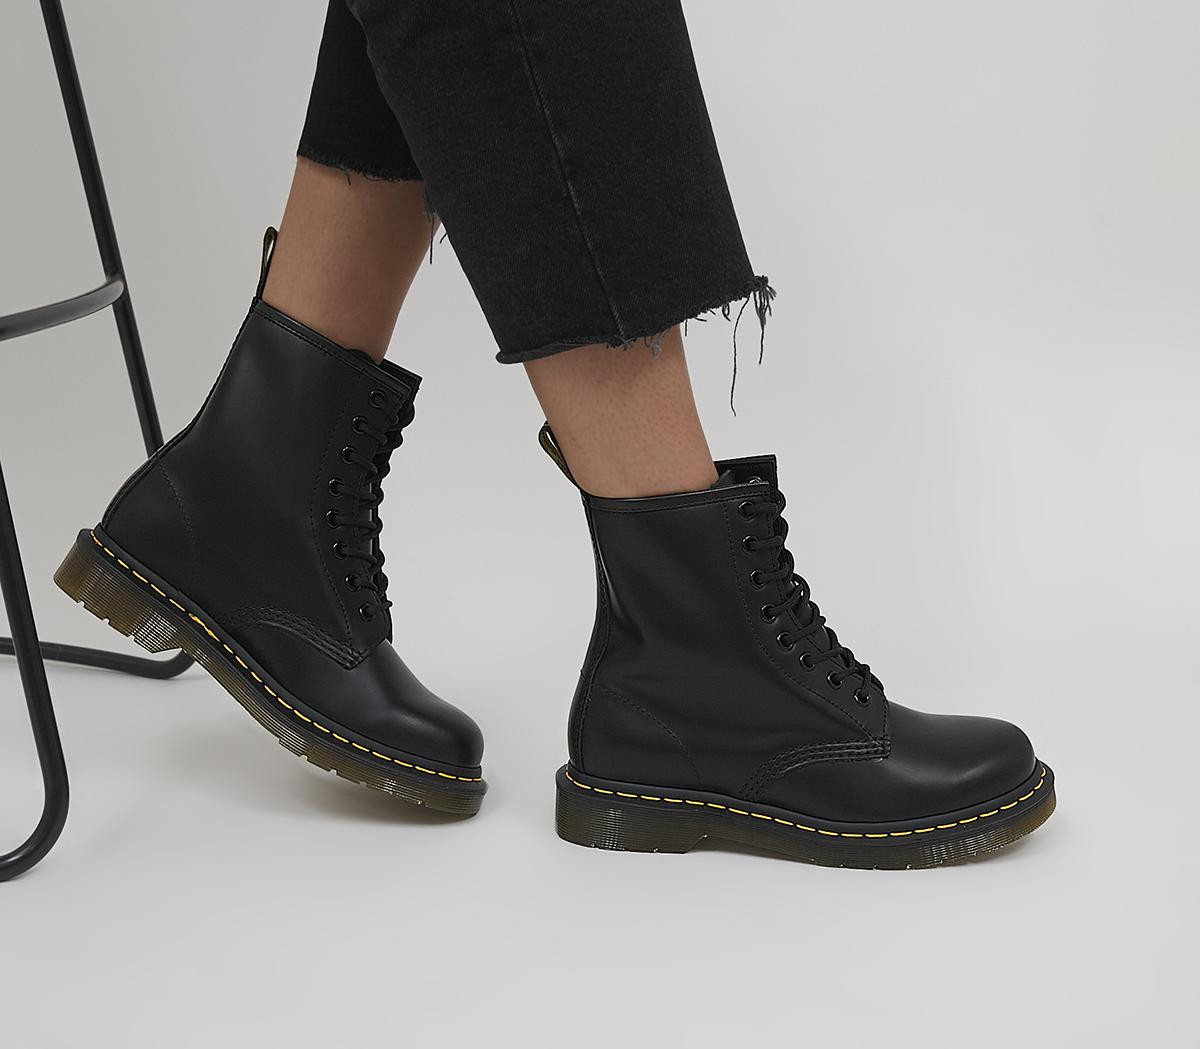 8 Eyelet Lace Up Boots F